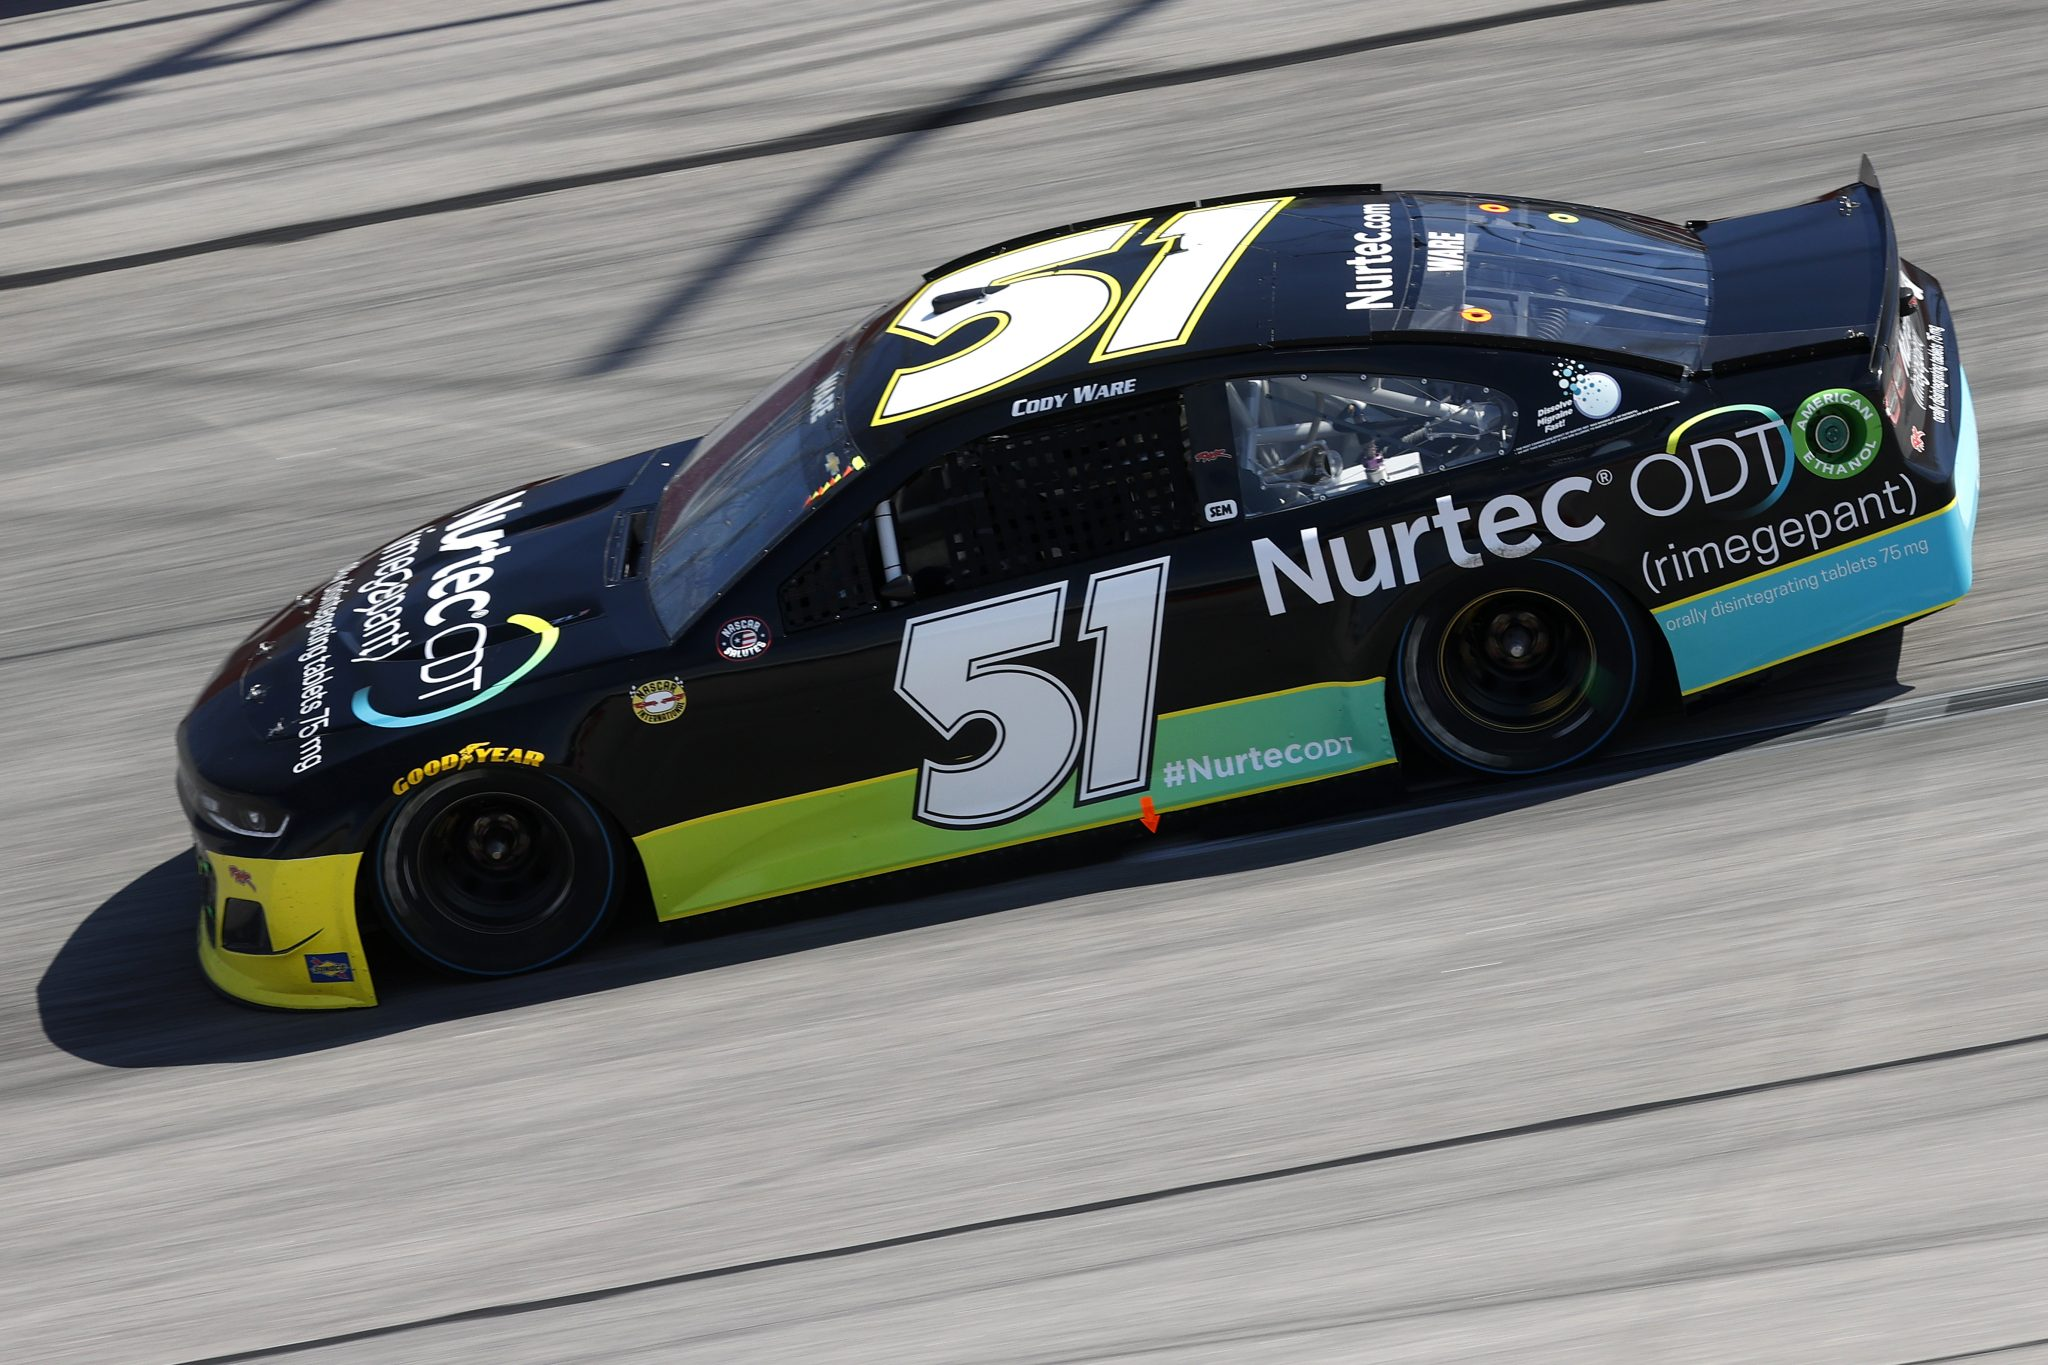 DARLINGTON, SOUTH CAROLINA - MAY 09: Cody Ware, driver of the #51 NURTEC ODT Throwback Chevrolet, drives during the NASCAR Cup Series Goodyear 400 at Darlington Raceway on May 09, 2021 in Darlington, South Carolina. (Photo by Chris Graythen/Getty Images) | Getty Images